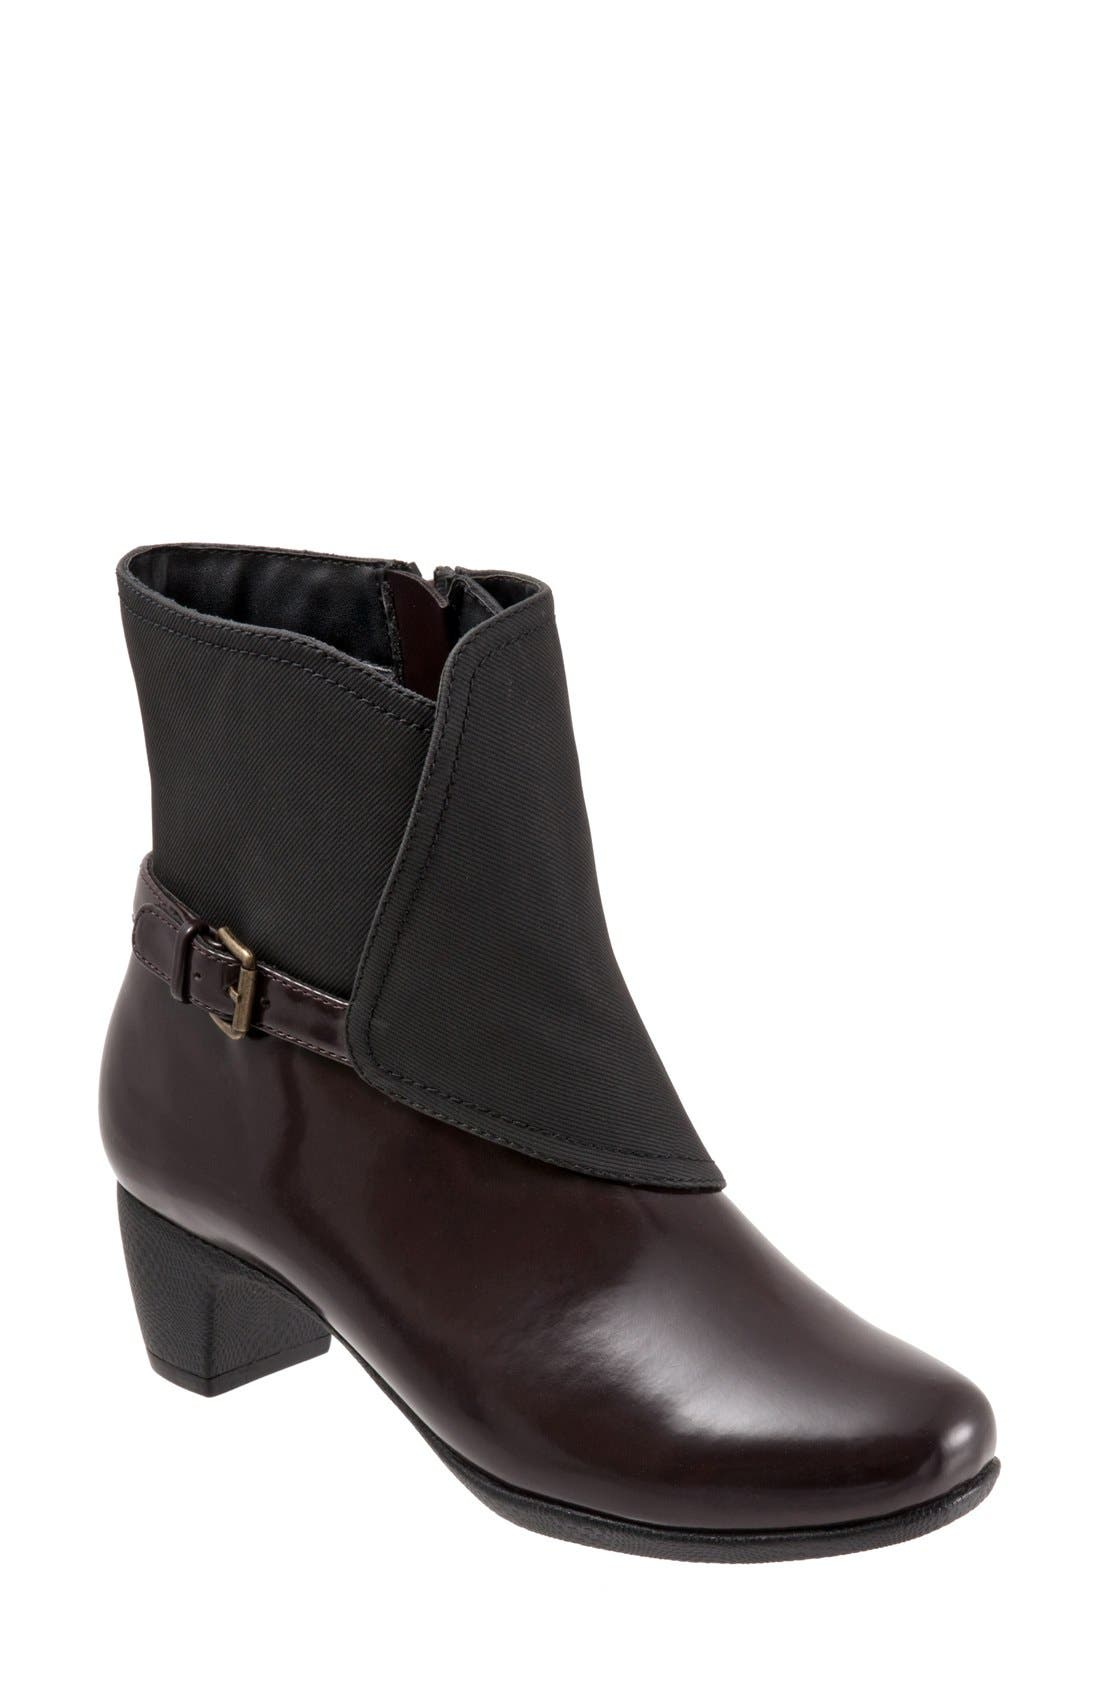 'Puddles' Waterproof Bootie,                         Main,                         color, 642